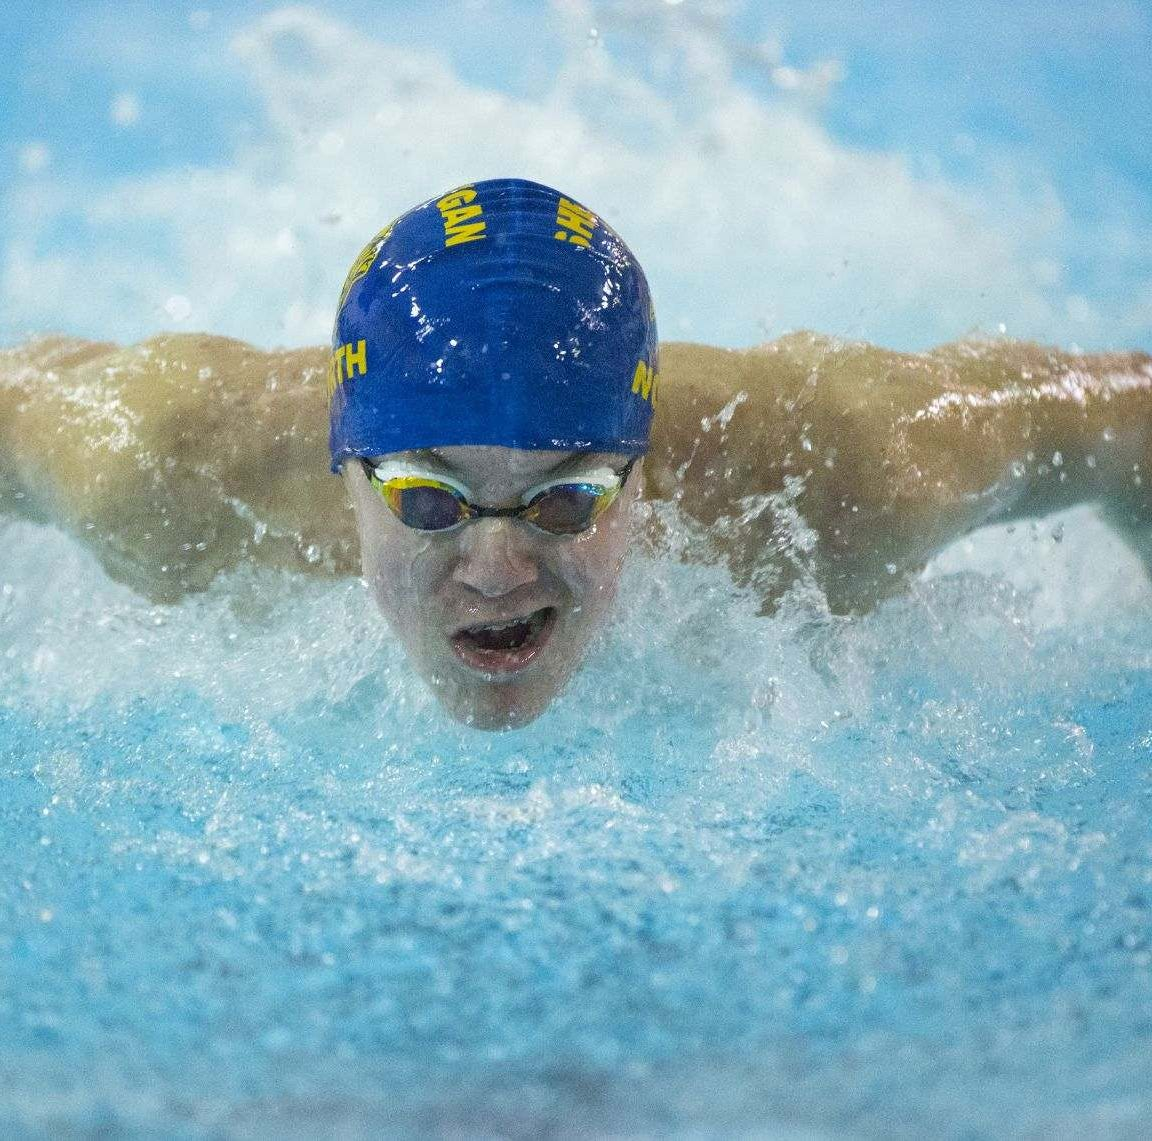 Sheboygan North's William Hayon wins state championship in 50-yard freestyle